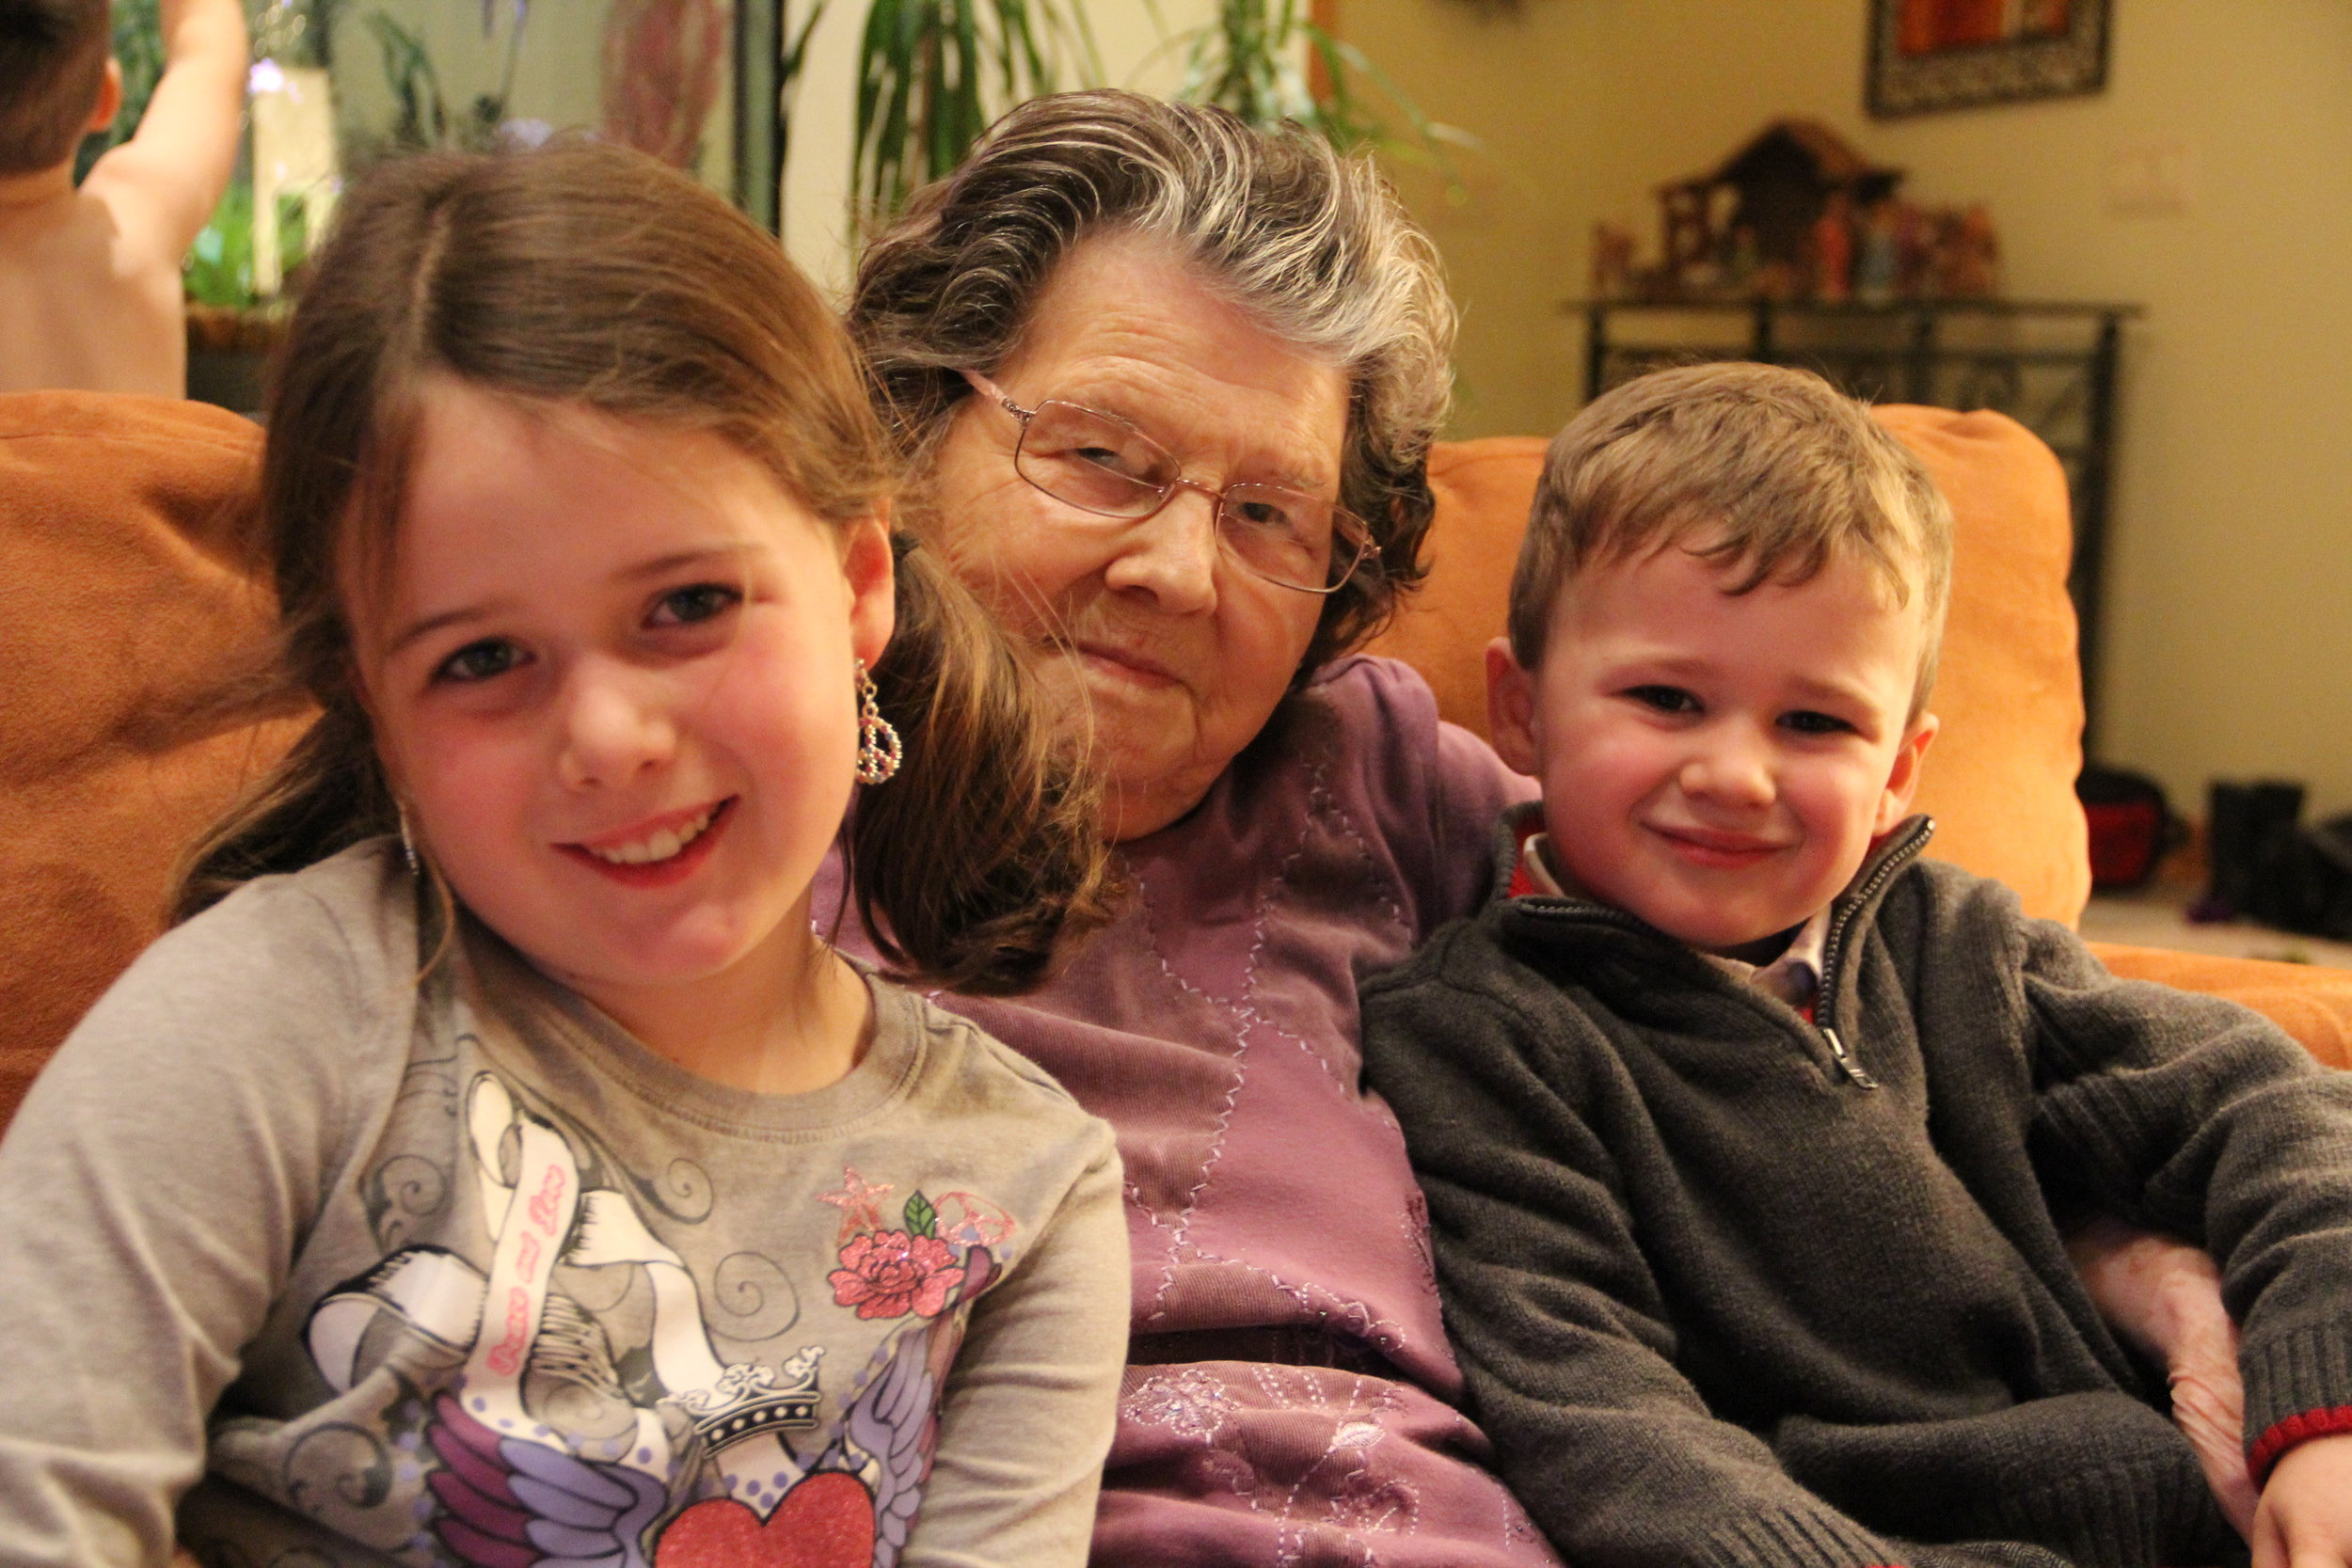 My grandmother with the littles.